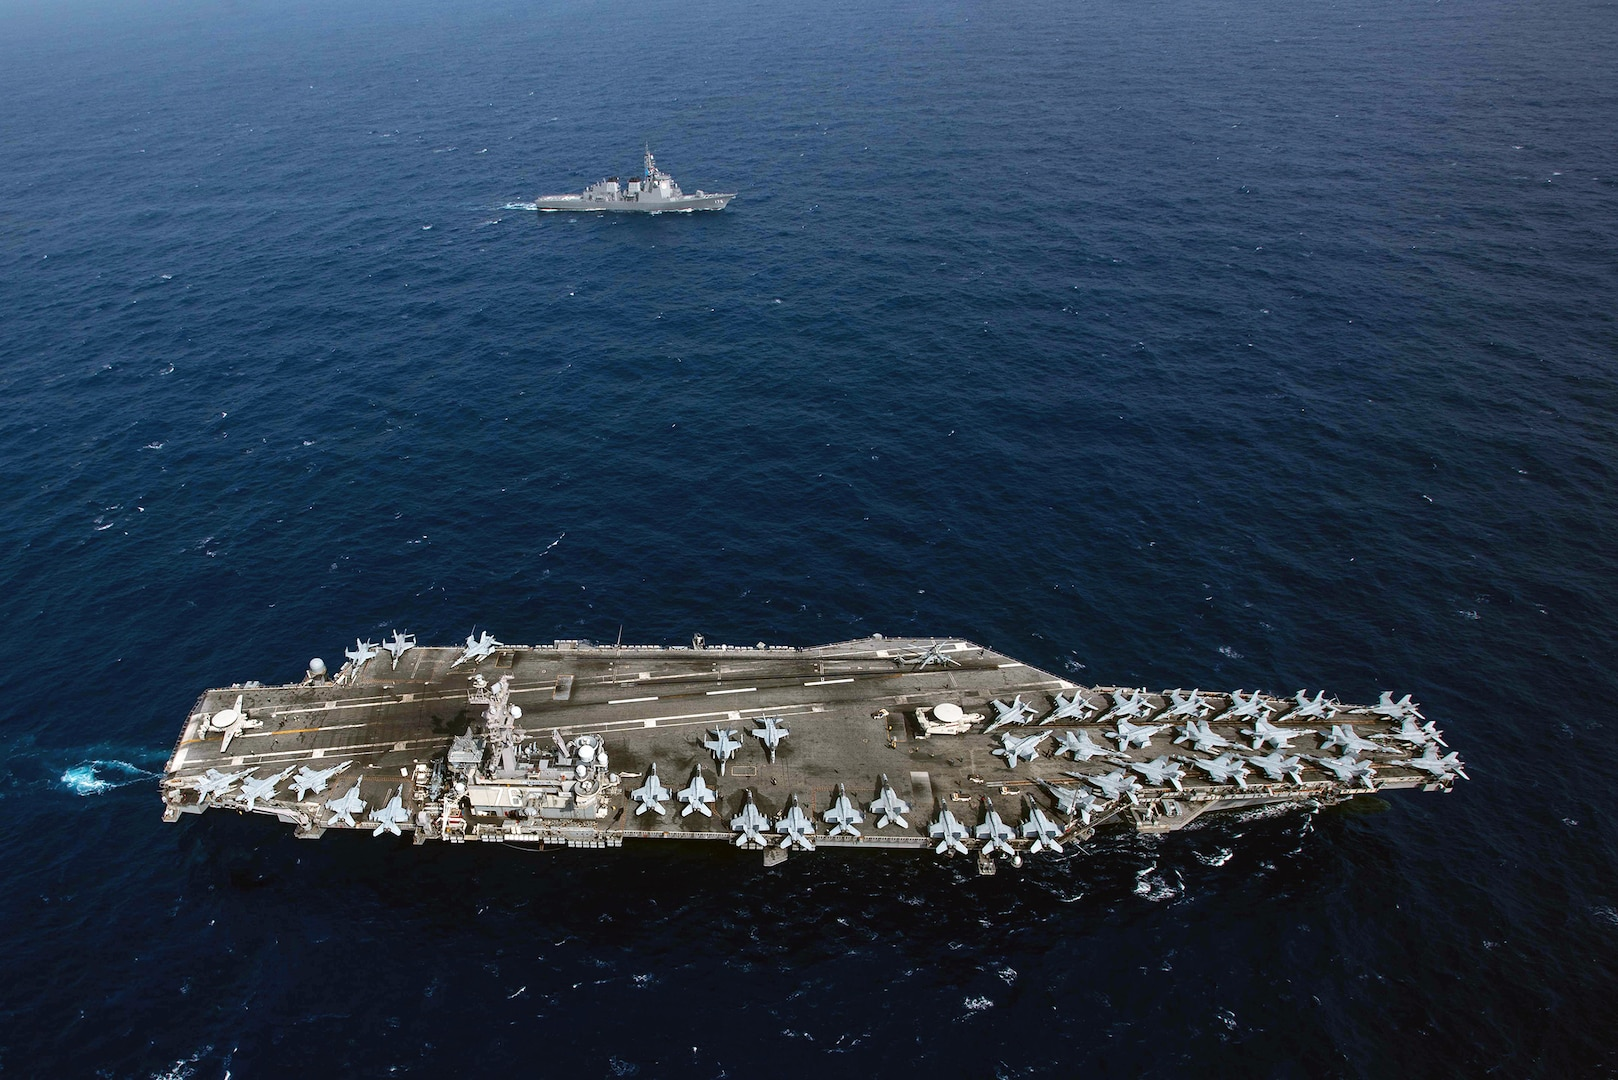 Ronald Reagan Carrier Strike Group, JMSDF Sail together in Western Pacific